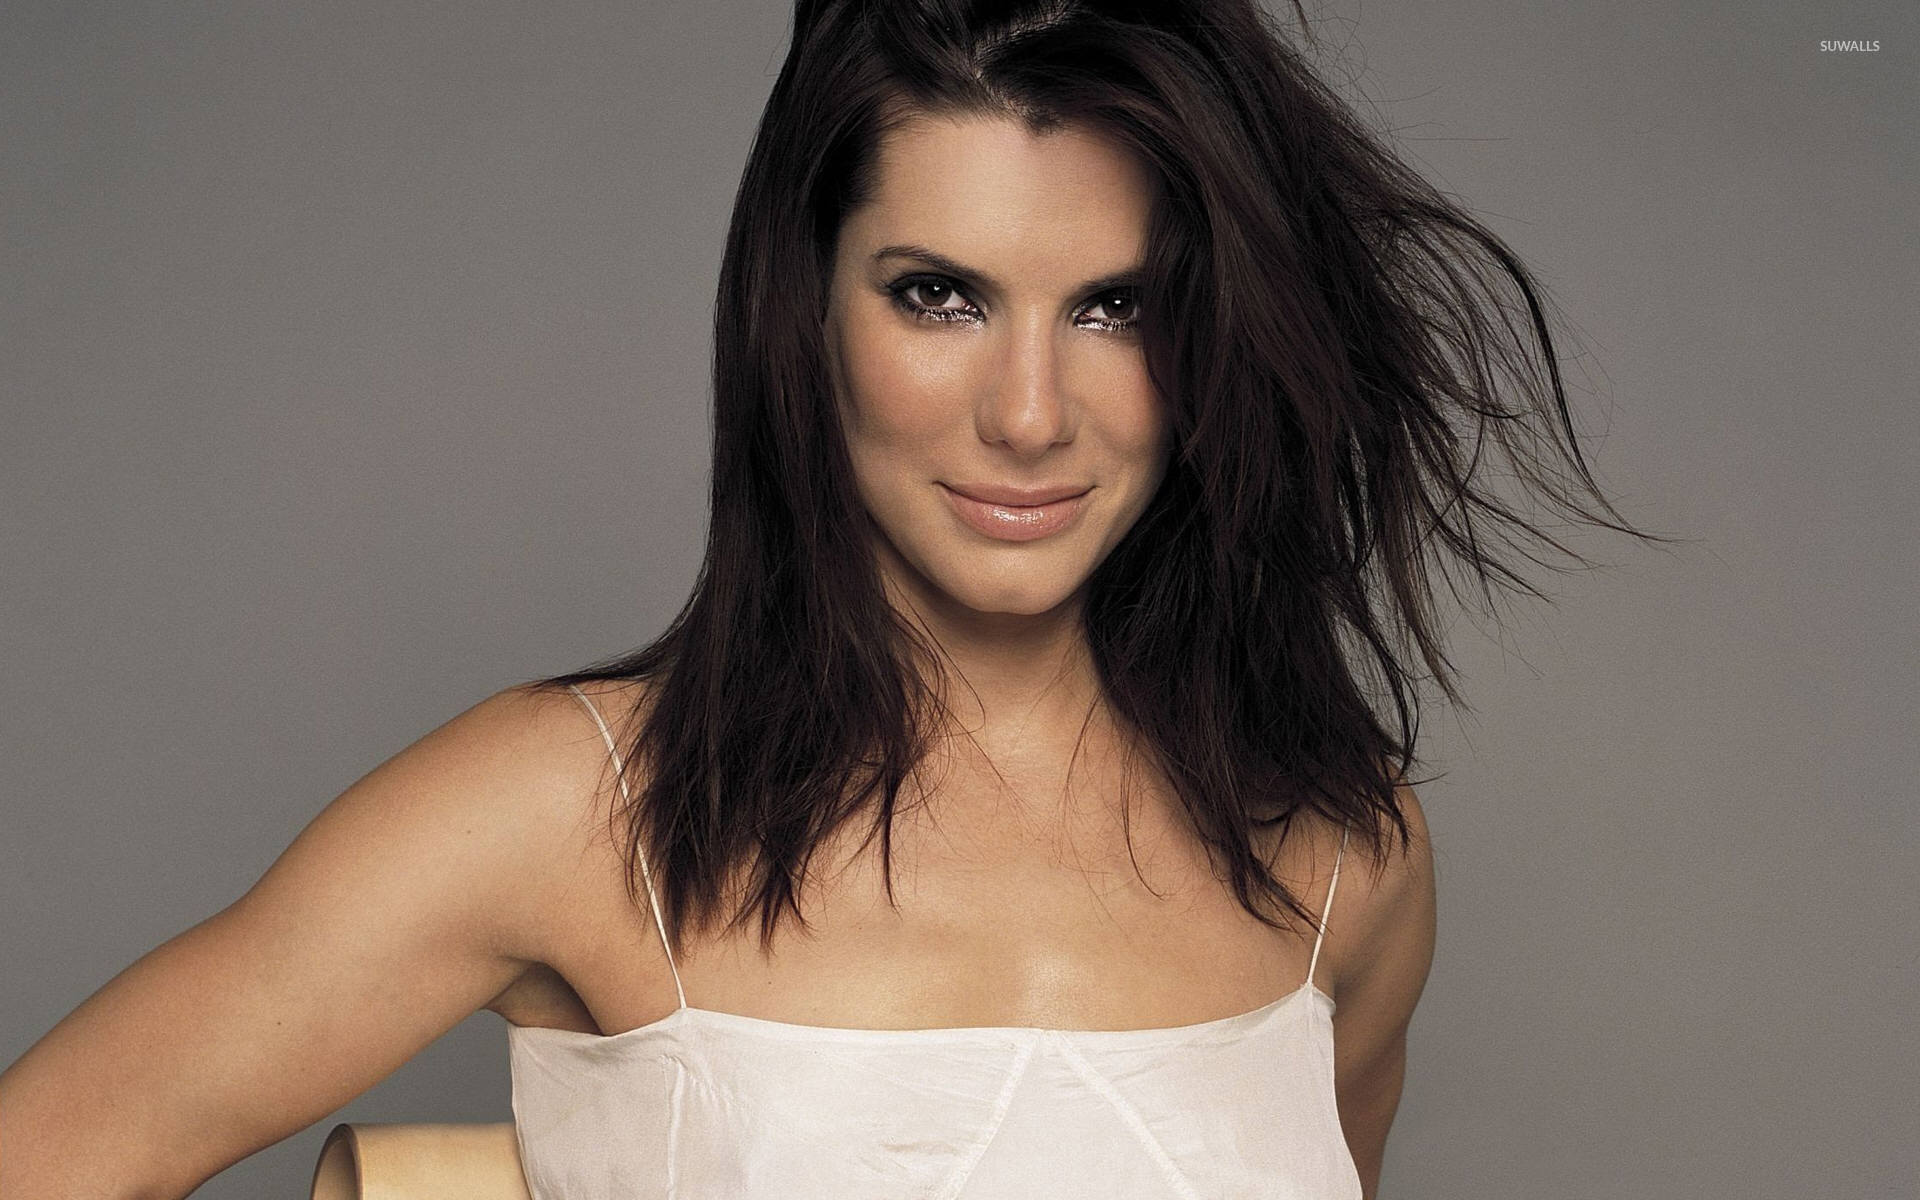 Sandra orlow facebook - Sandra Bullock 5 Wallpaper